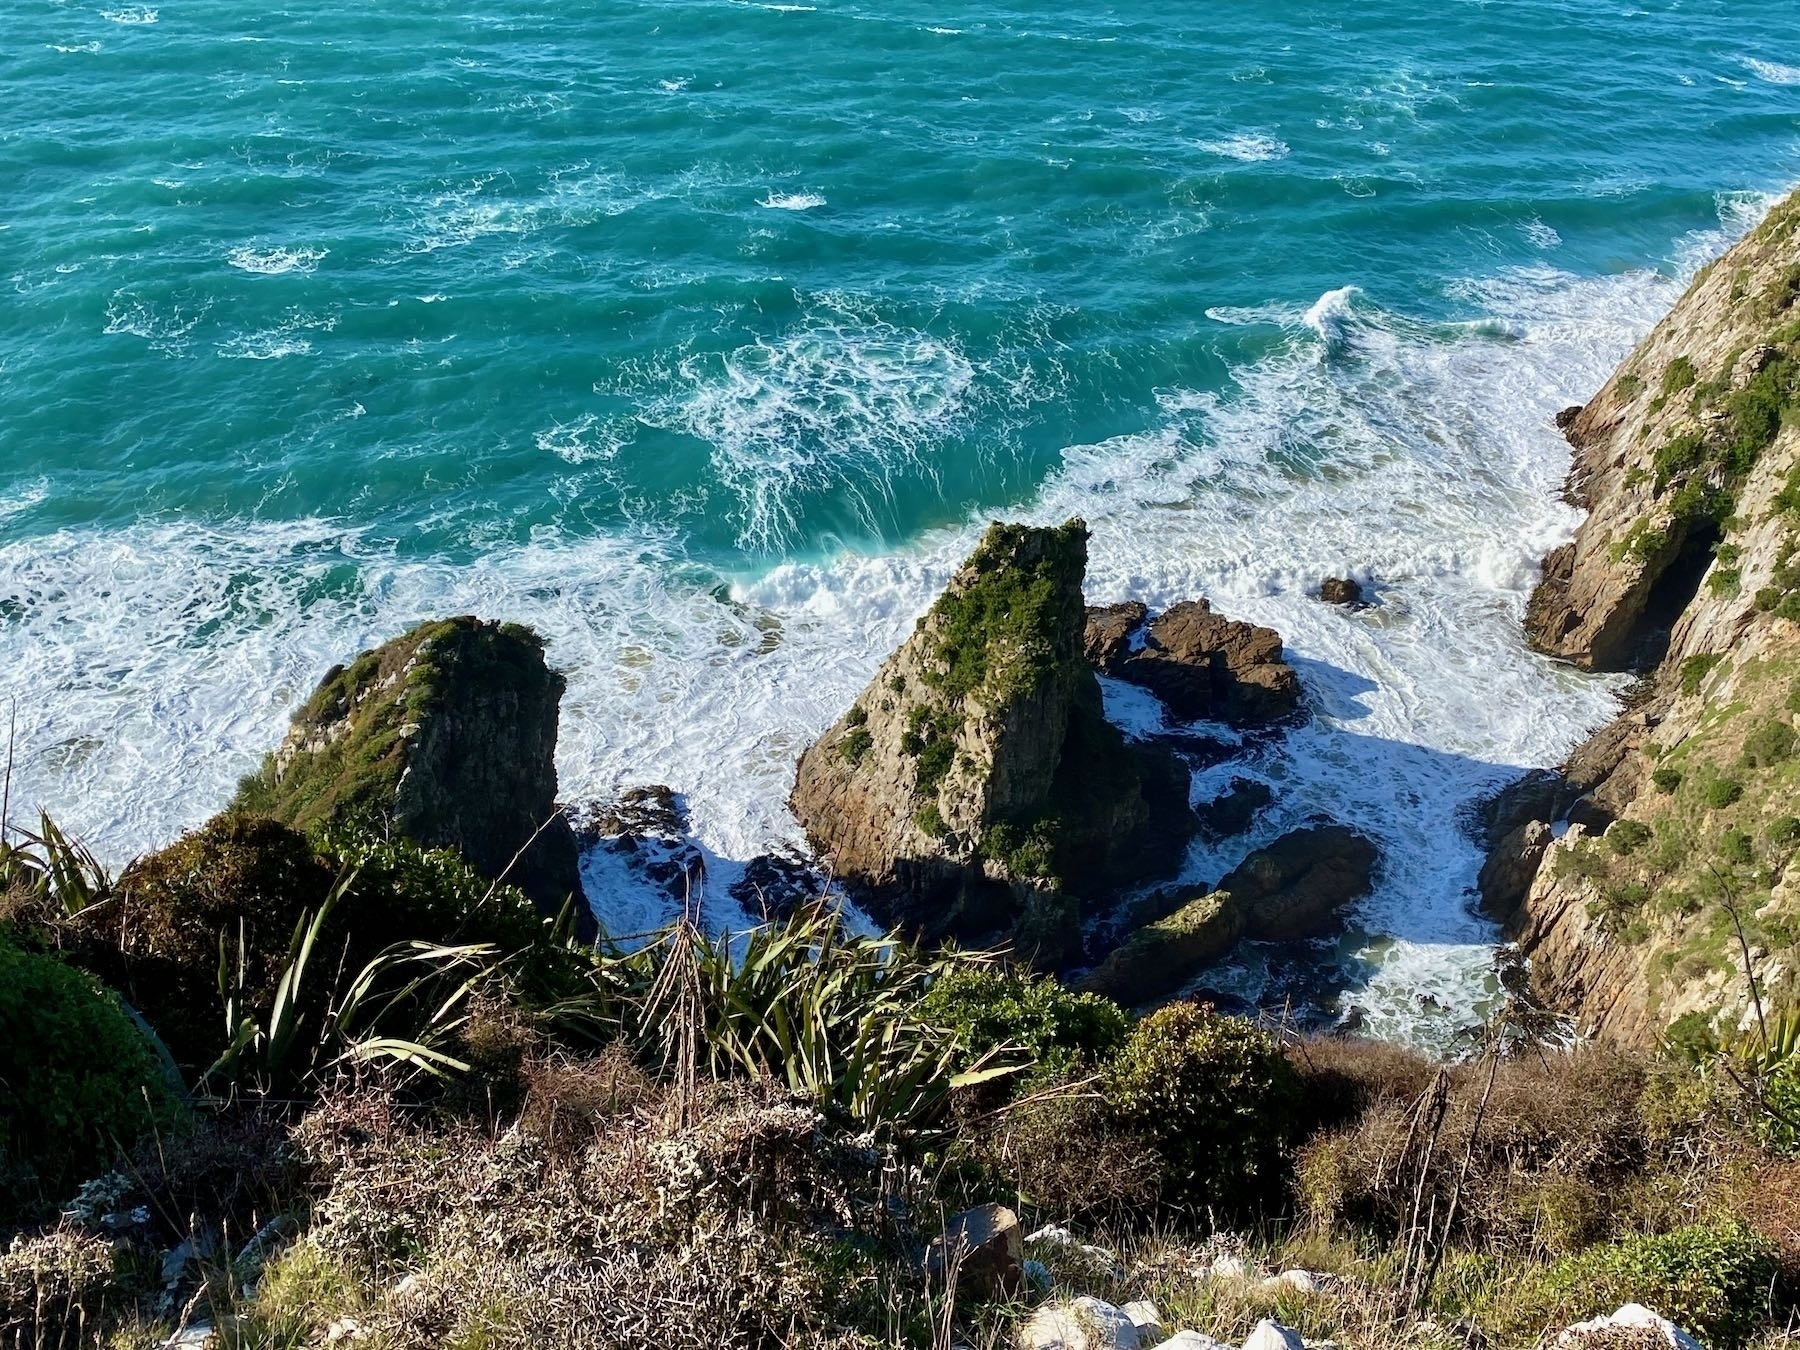 Nugget Point, Tokata, looking down the sheer cliff to the rocky coastline.